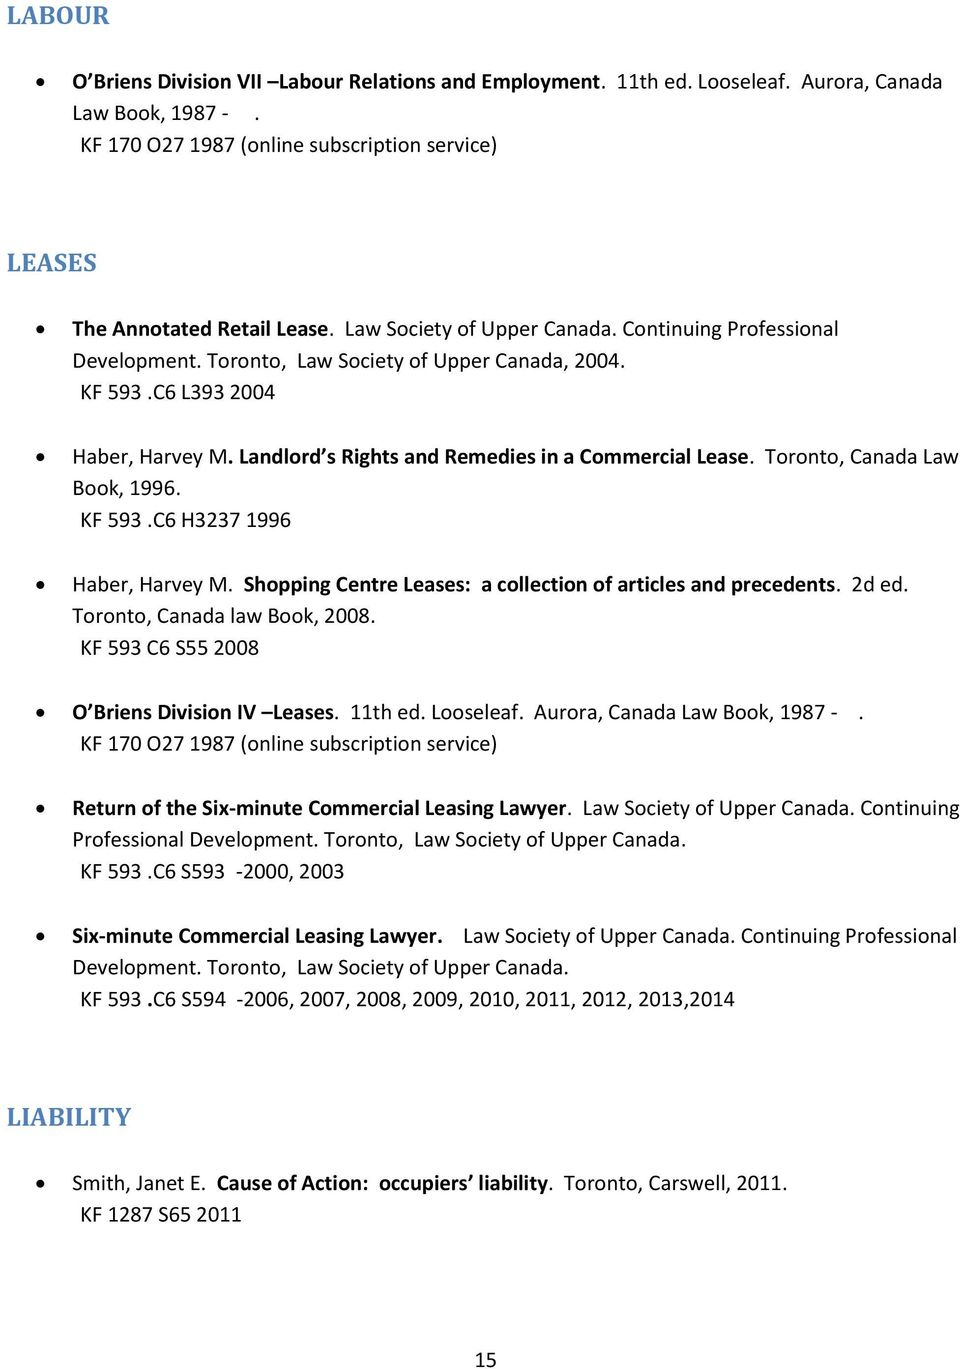 Toronto, Canada Law Book, 1996. KF 593.C6 H3237 1996 Haber, Harvey M. Shopping Centre Leases: a collection of articles and precedents. 2d ed. Toronto, Canada law Book, 2008.